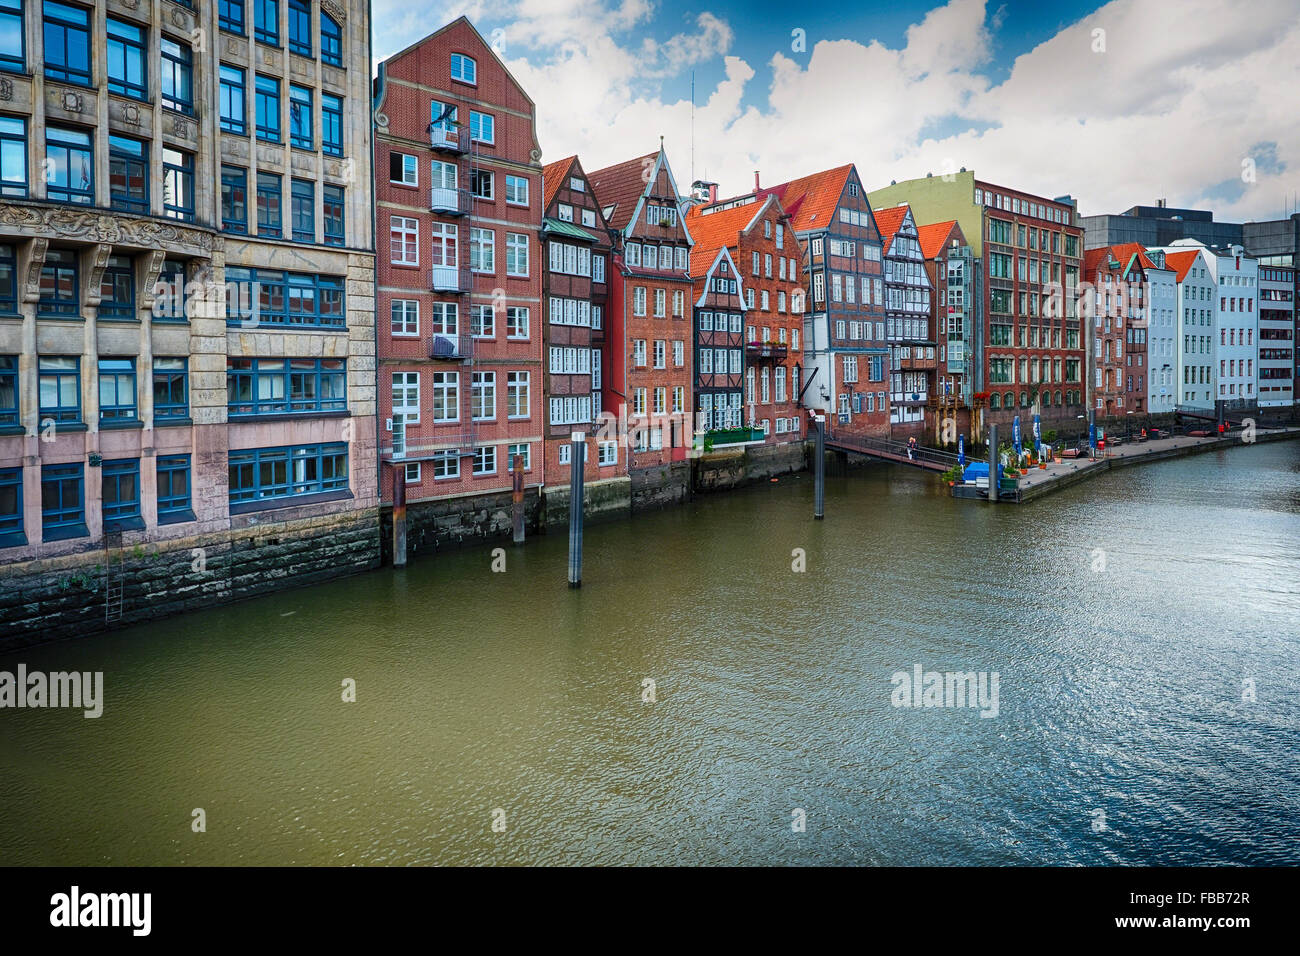 Colorful Row Houses in Old Town Hamburg Along a Canal, Viewed from the High Bridge, Hamburg, Germany - Stock Image